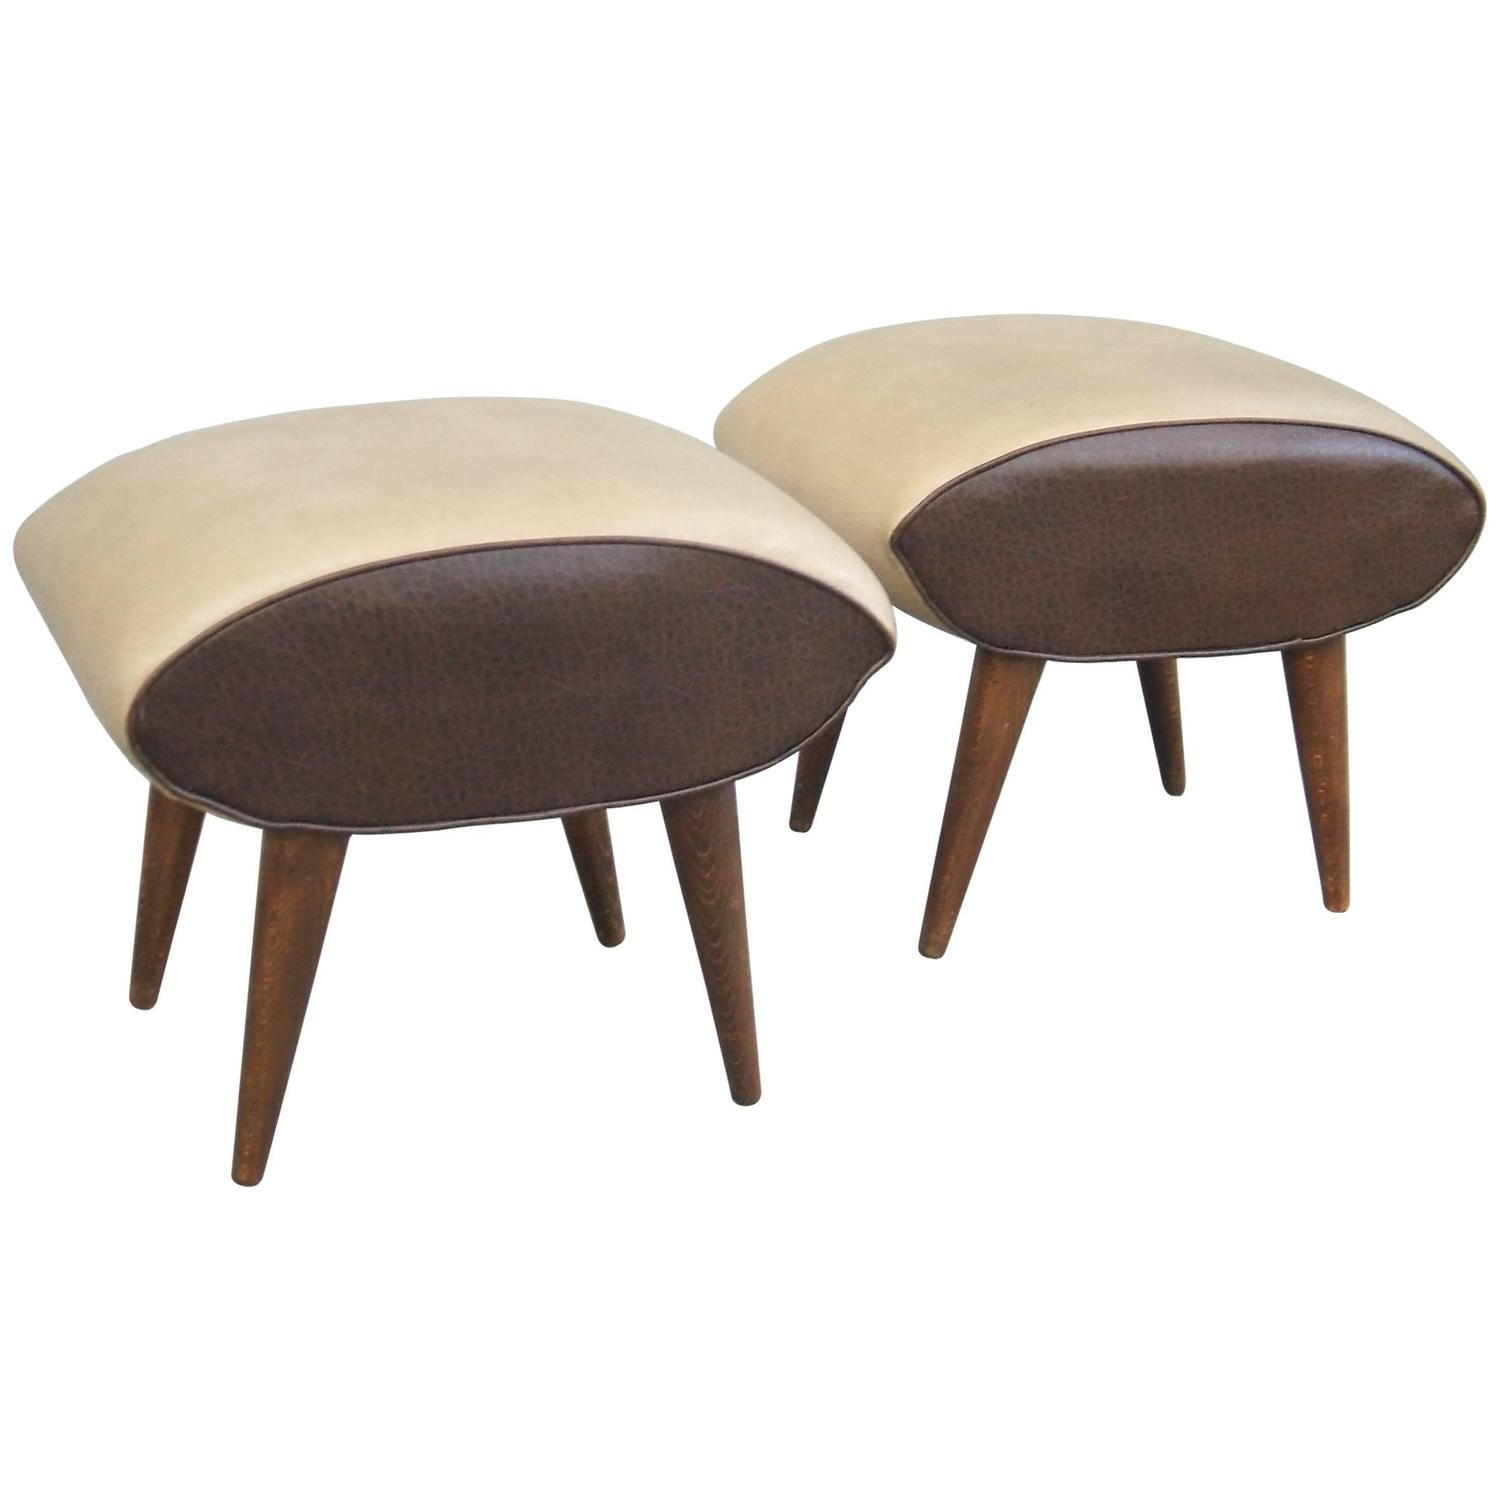 Wonderful Pair Of Leather Stools In The Manner Of Mollino Leather Stool Stool Leather